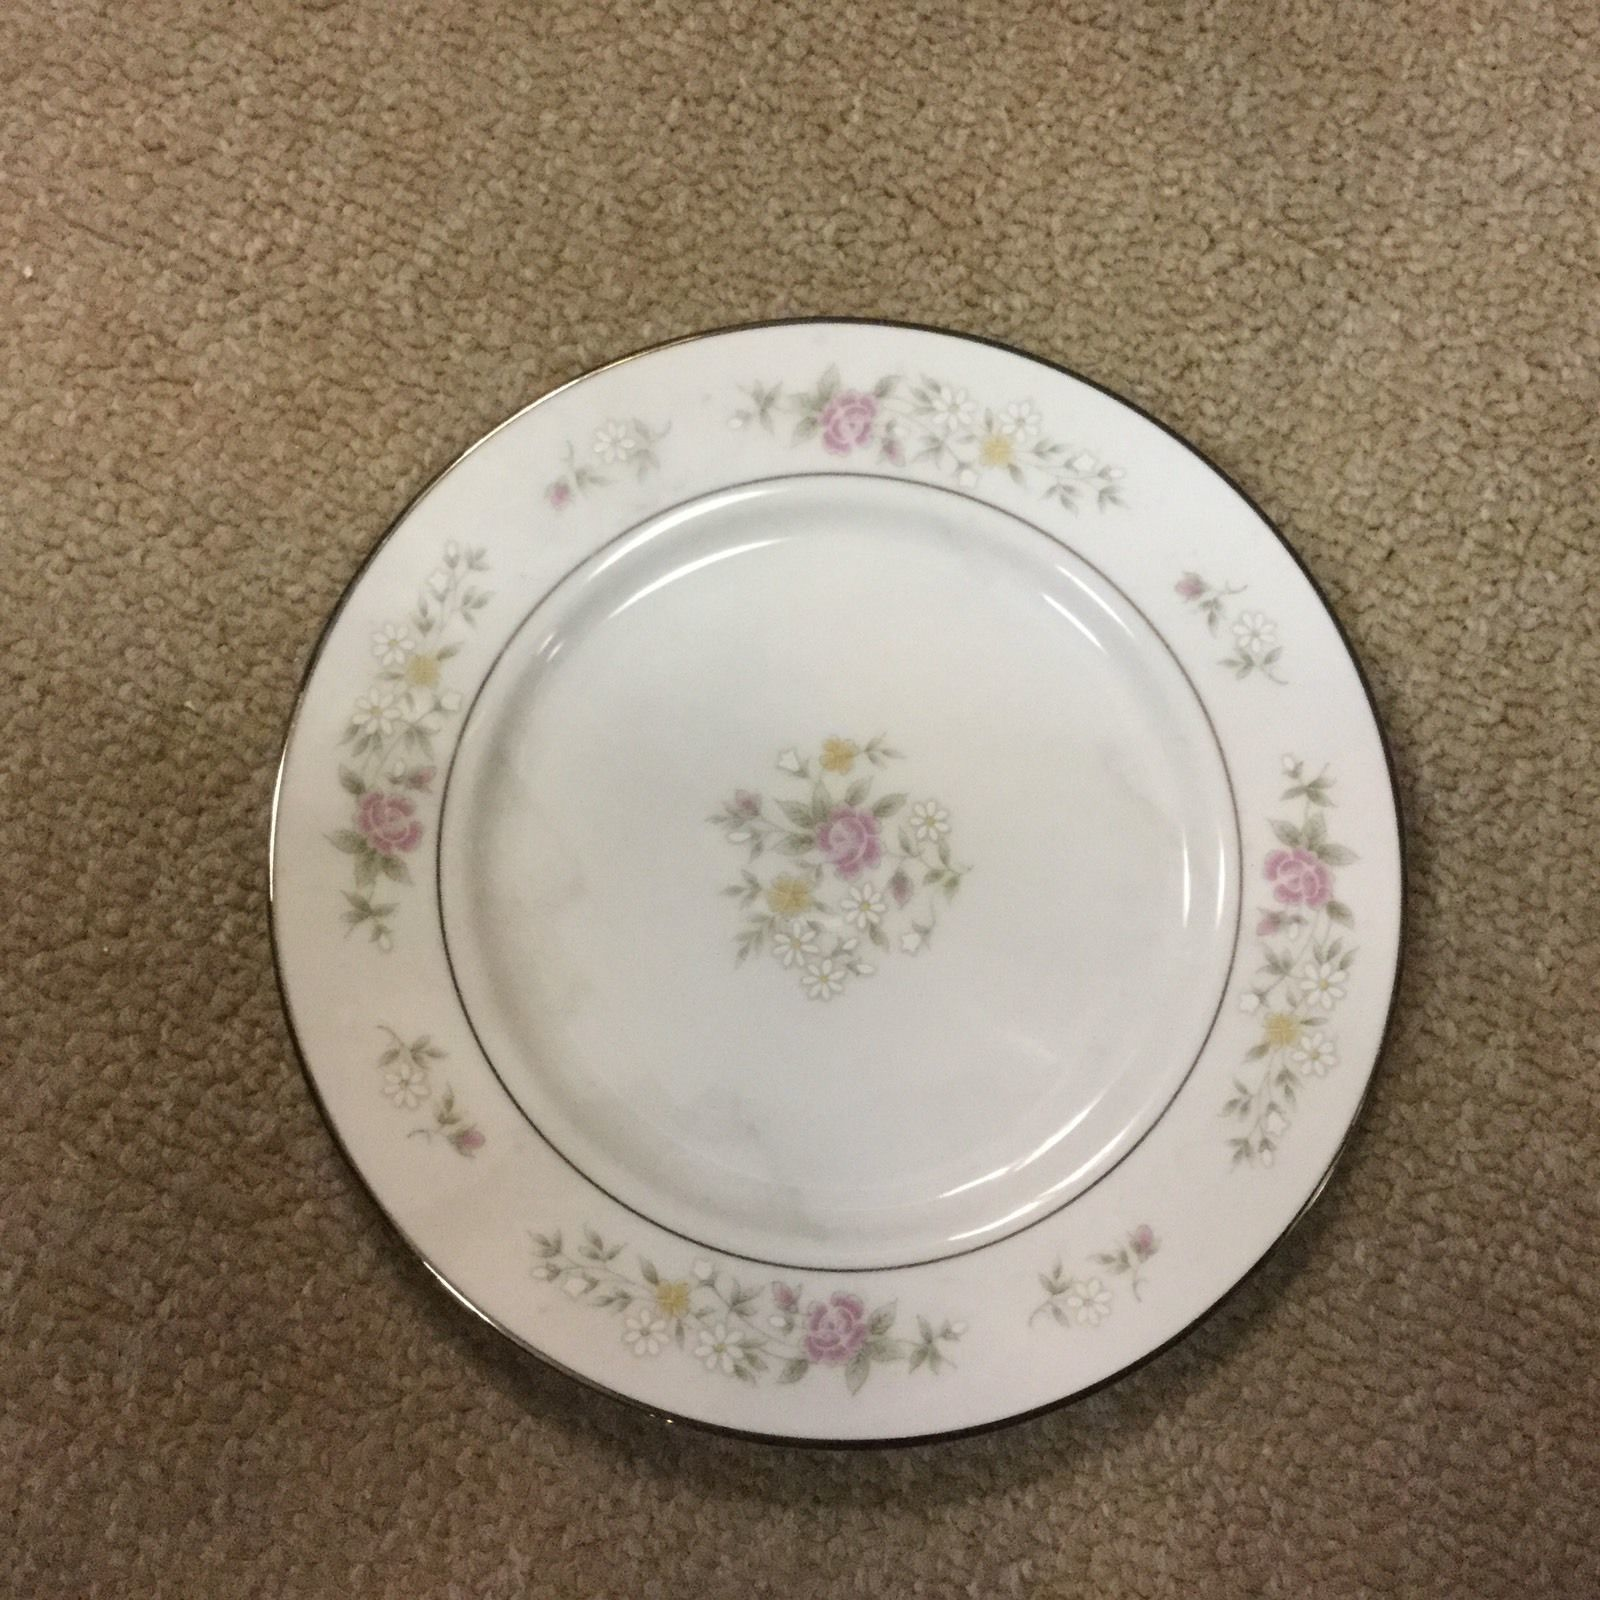 Lenox China Set Bouquet Collection Meadow Pinks From Japan - 16 Place Setting image 2